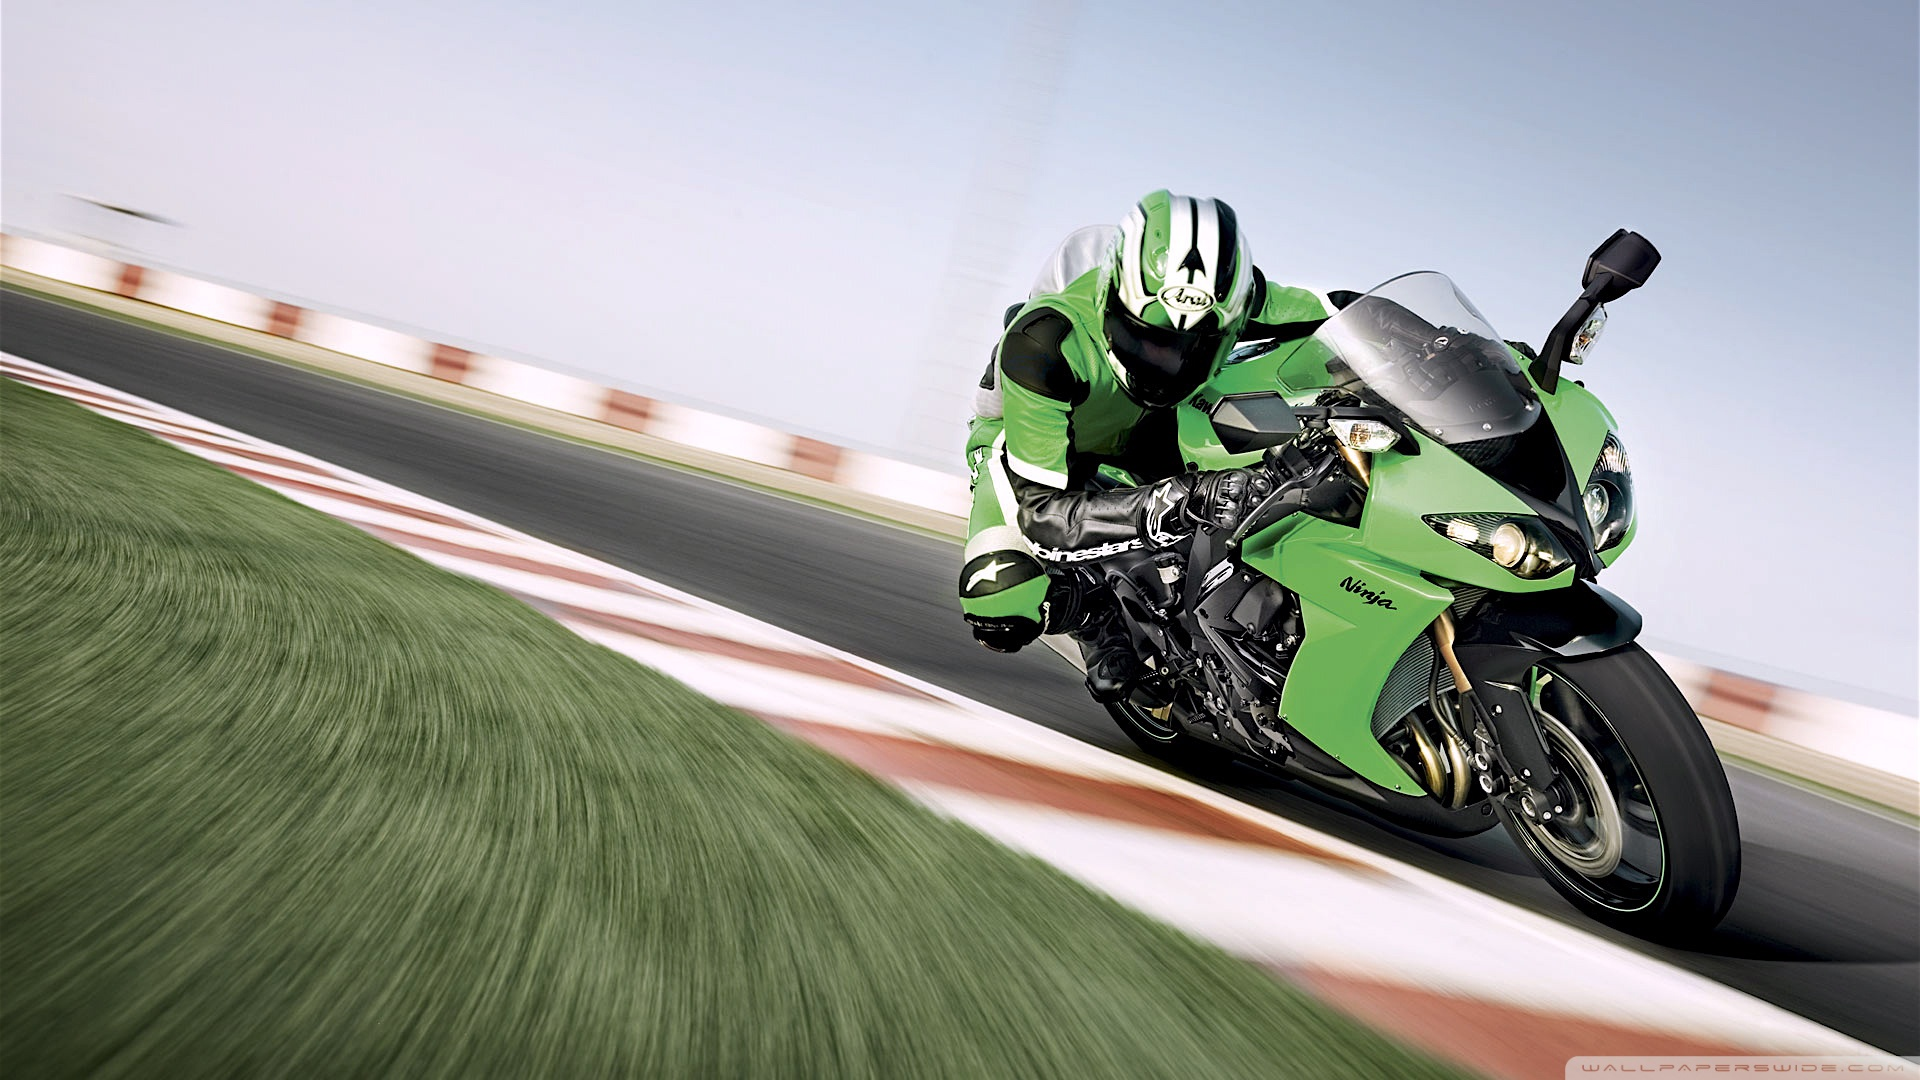 Kawasaki Wallpaper HD